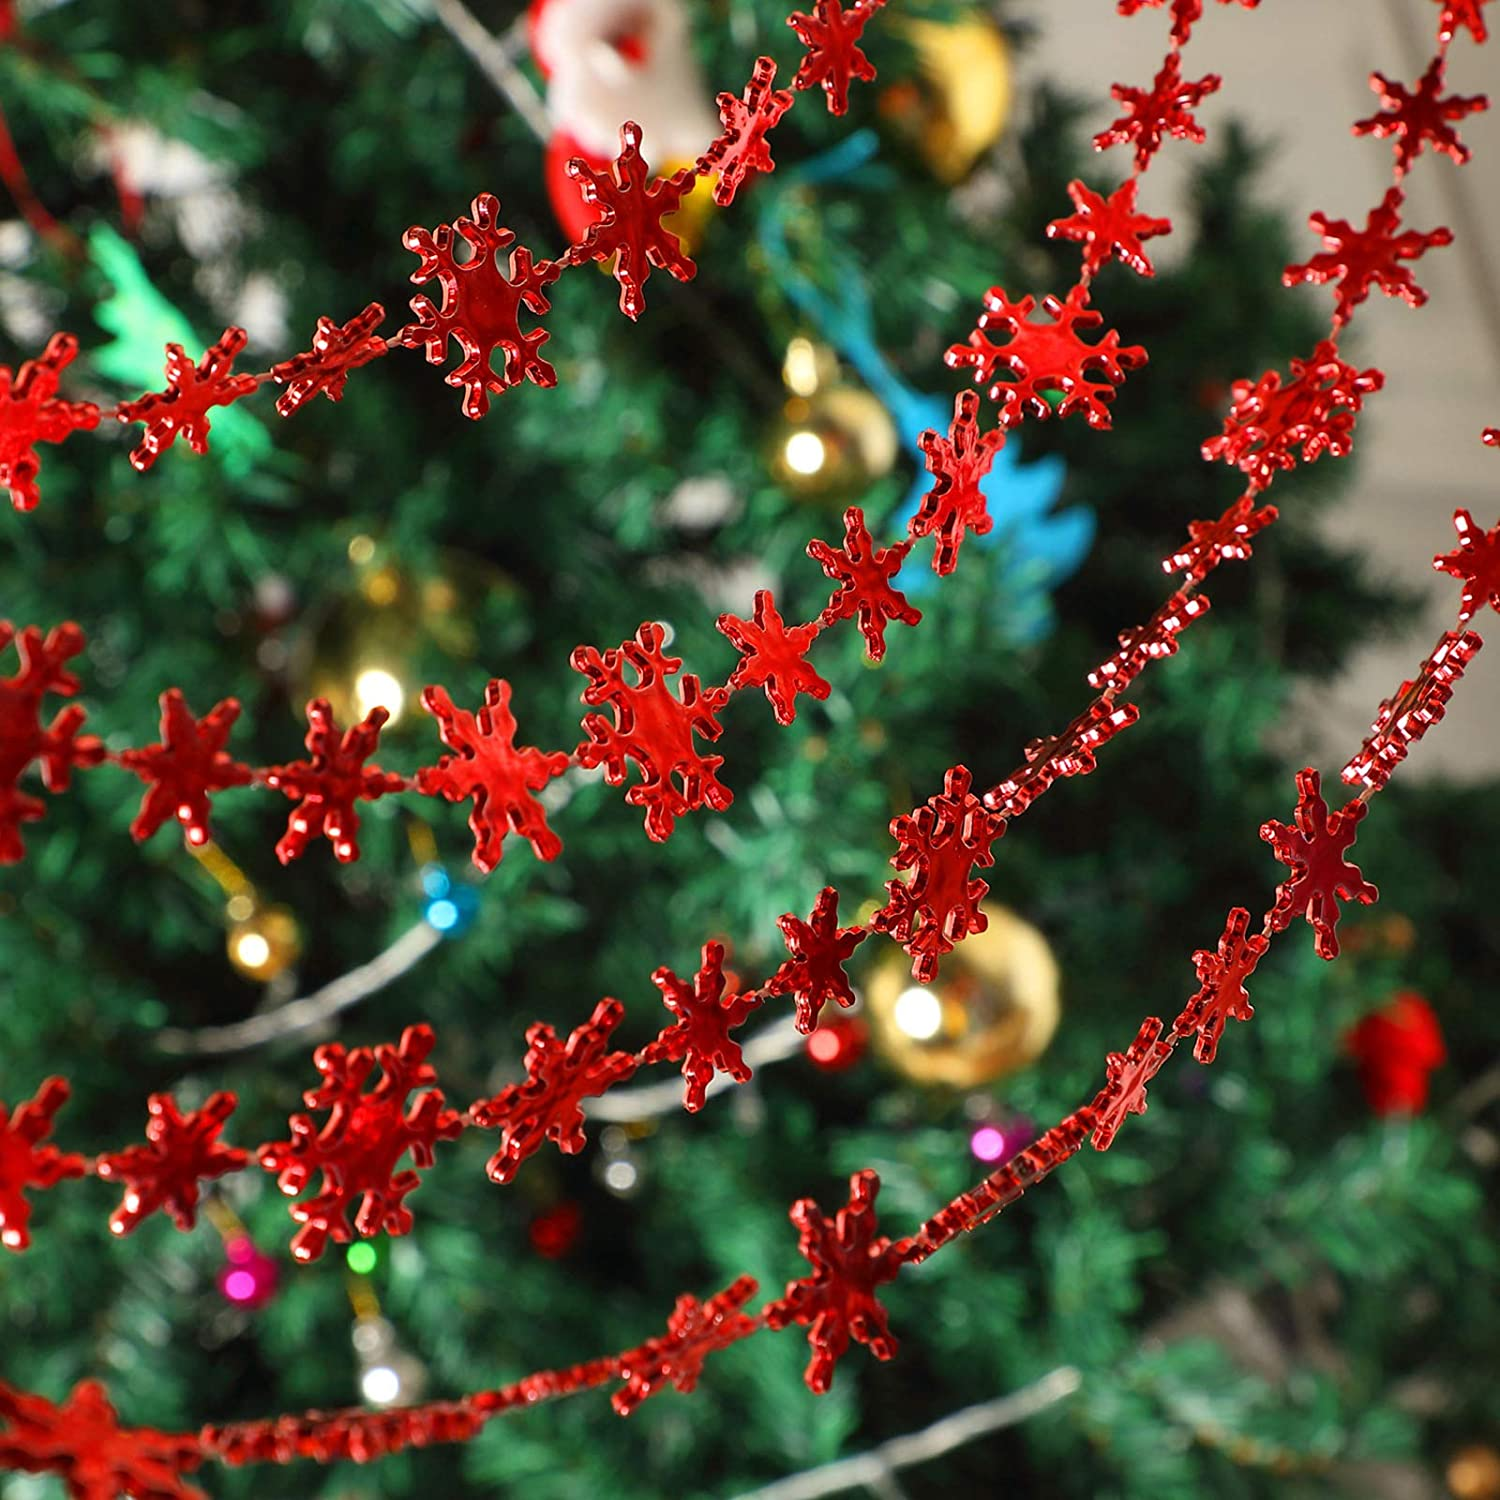 10 Meters Christmas Tree Ornaments Snowflake Ornaments Christmas Tree Decoration Red Series Pendant Jewelry Handmade Diy Necklace Bracelet Supplies For Snowflake Bead Curtain Hanging Decoration Home Kitchen